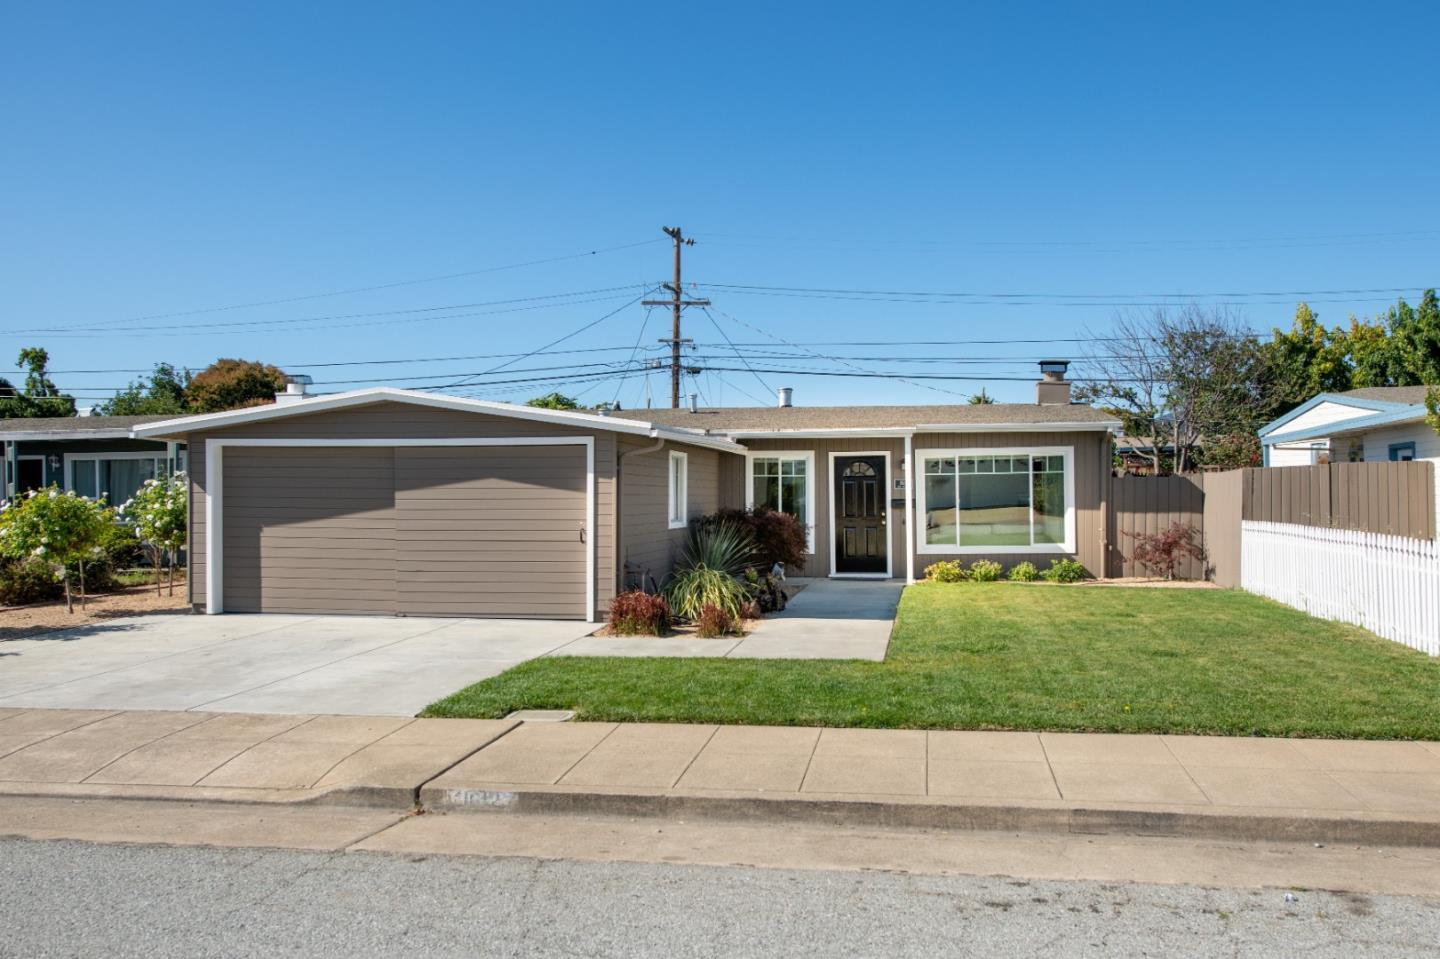 Detail Gallery Image 1 of 16 For 1612 Dix St, San Mateo, CA 94401 - 3 Beds | 2 Baths